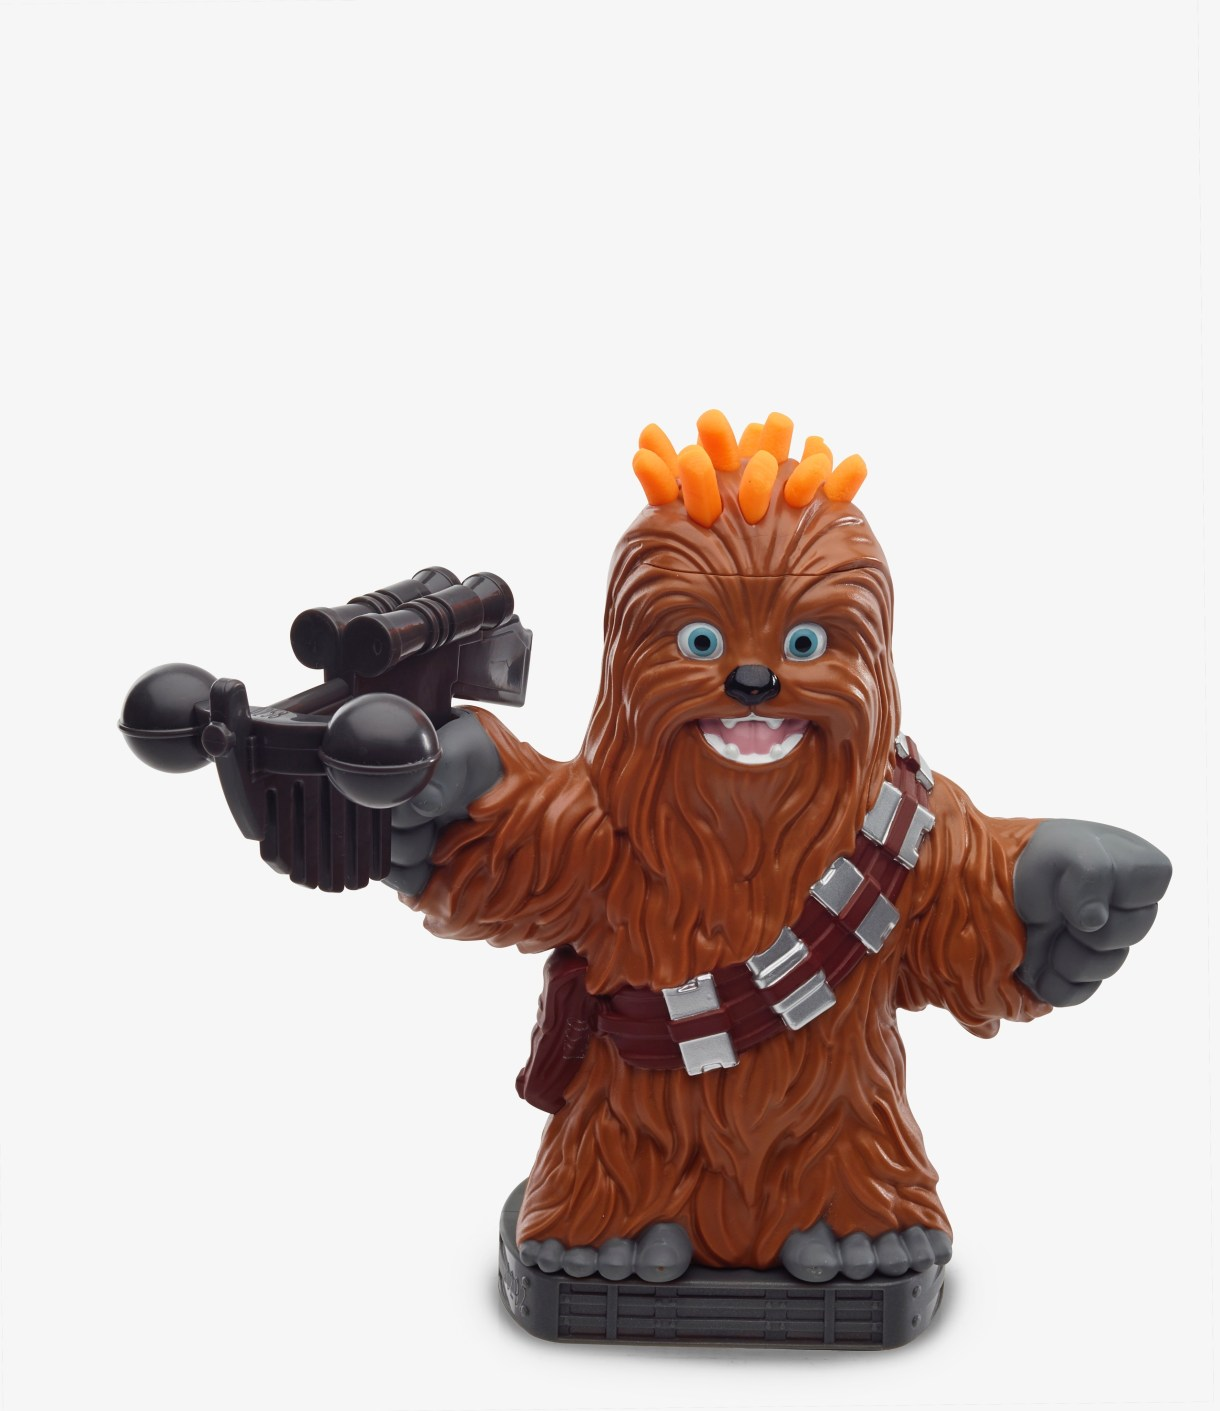 Check out Hasbro's Solo: A Star Wars Story toys!